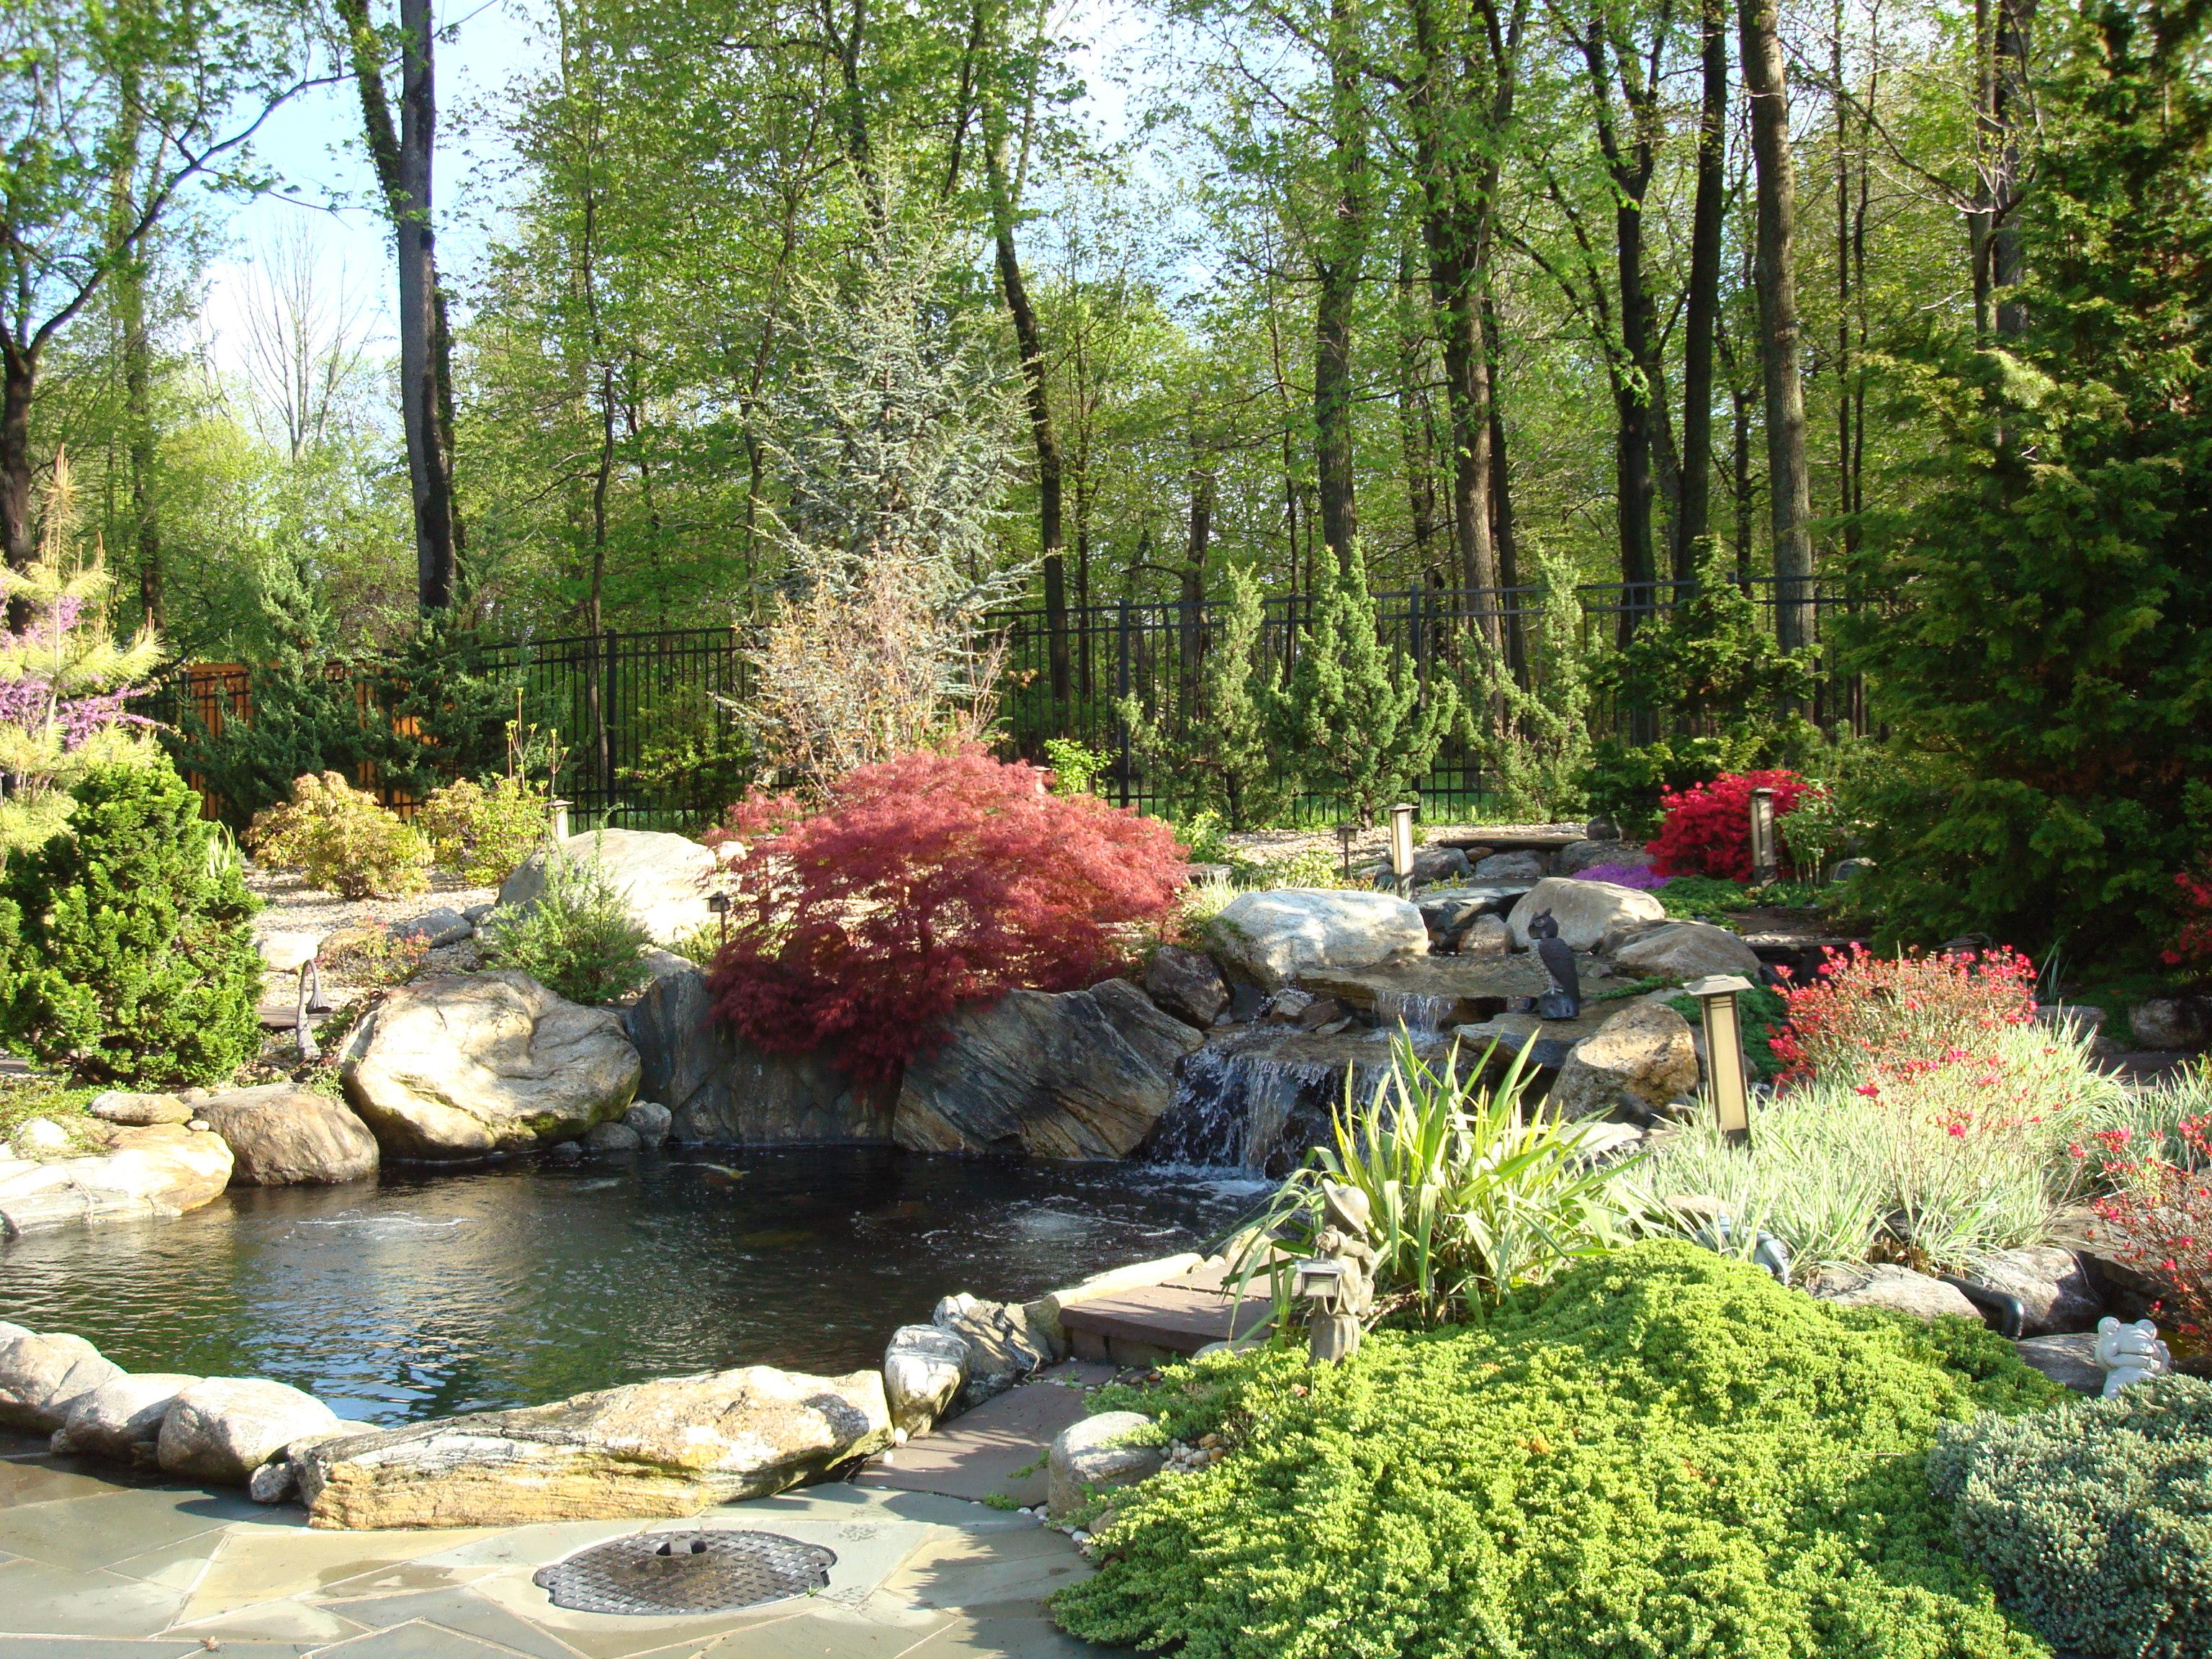 Hand pruned and illuminated plantings are a great joy for the homeowners from one season to another. The expanded landscaping design embraced the traditional Koi ponds that were already in use. We als